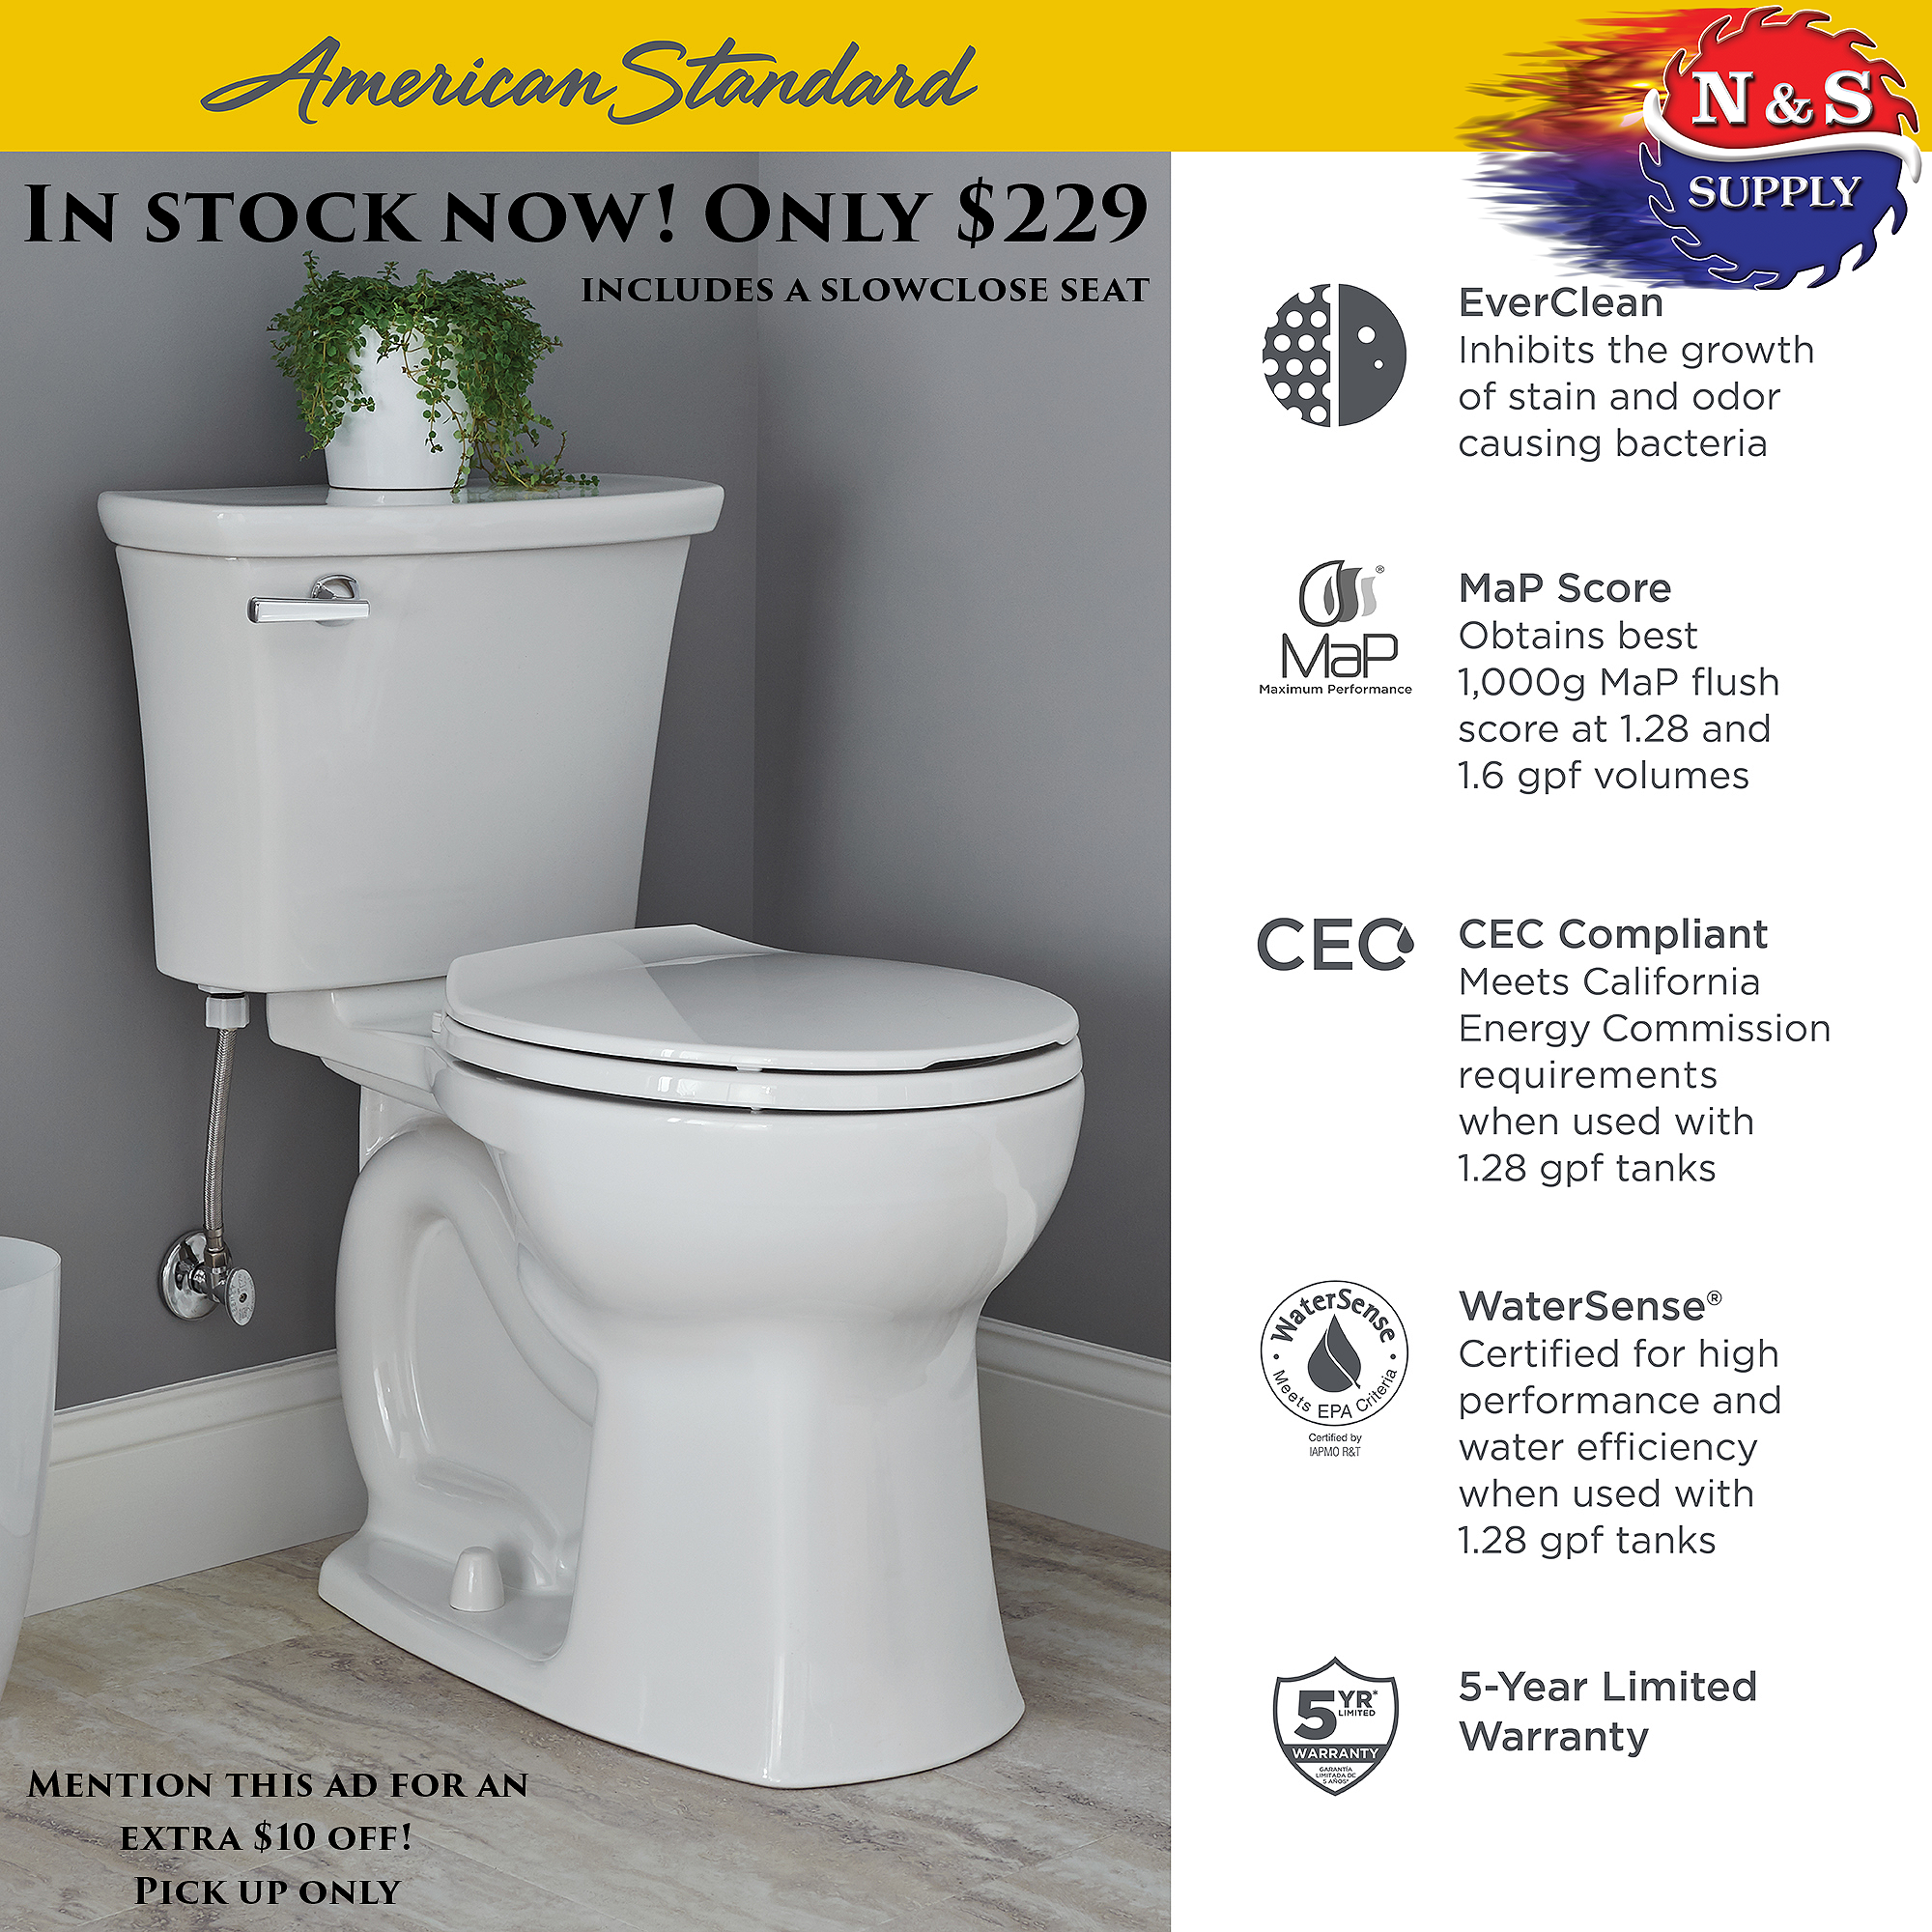 Christmas Present For Your House This Beautiful Toilet Is One Of The Best Flushing And You Can T Beat The Price R Edgemere Toilet Christmas Present For You